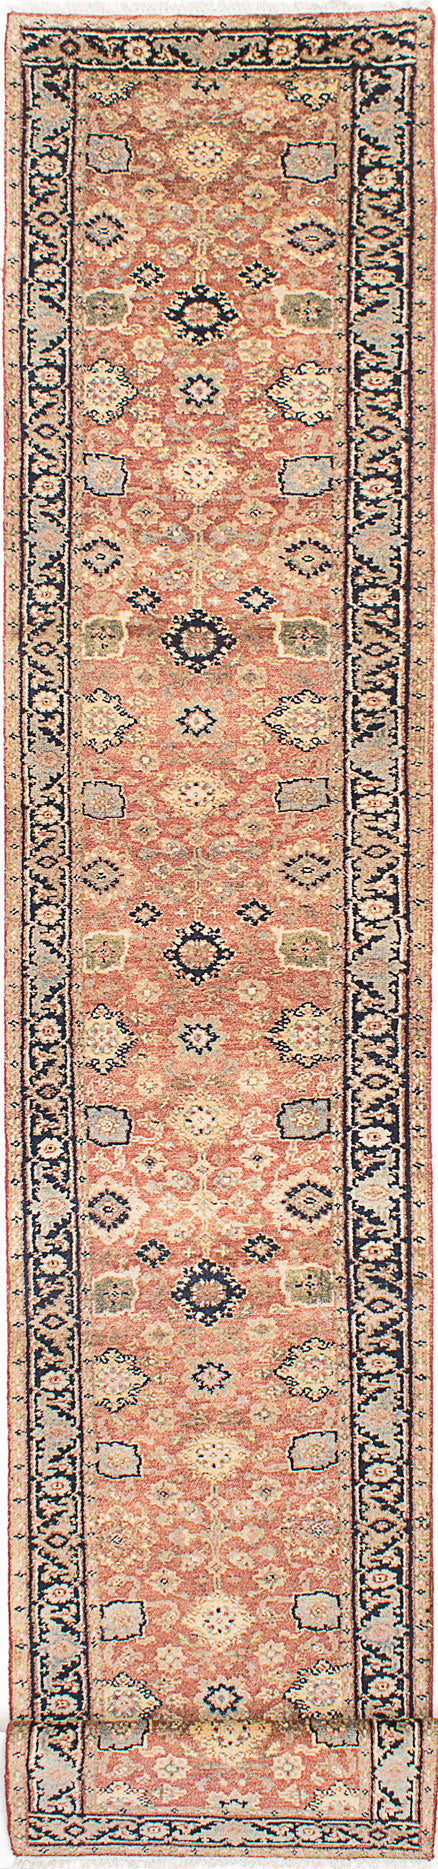 Hand-knotted Indian Floral  Traditional Serapi-Heritage Runner rug  Copper 2.6 x 20.2